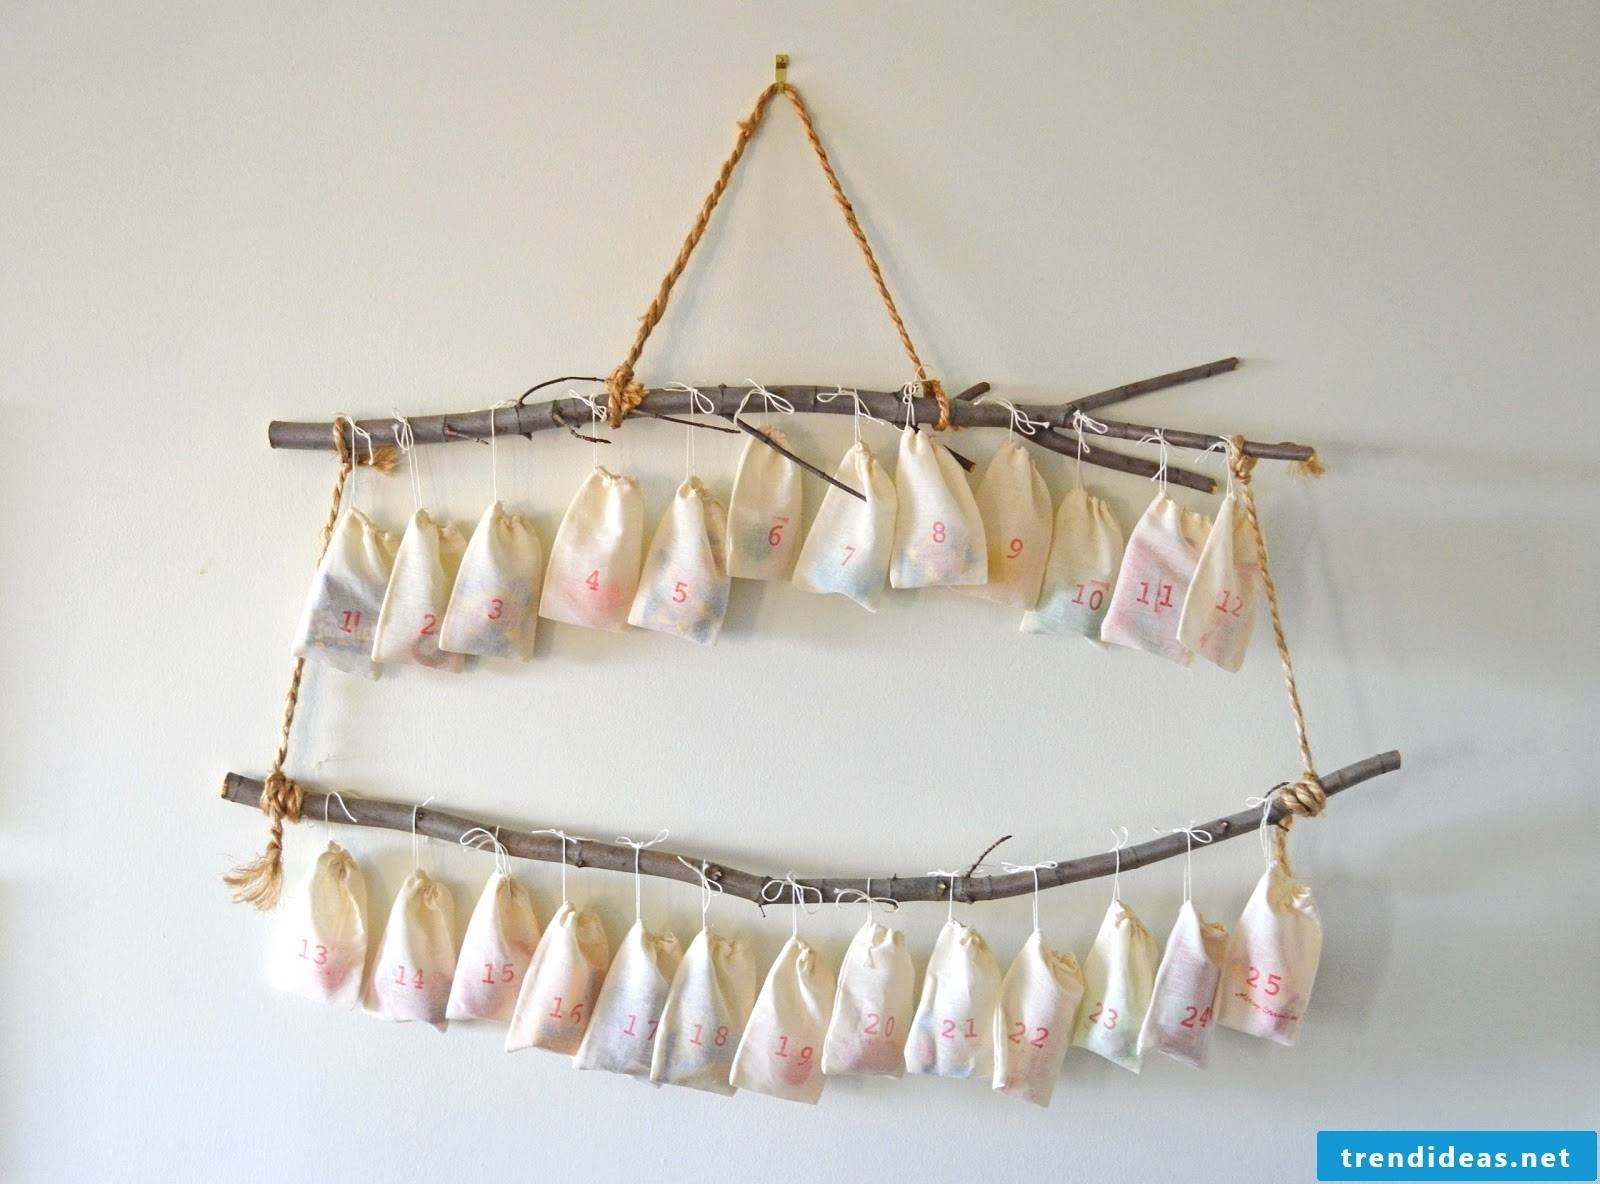 Hanging advent calendar made of small fabric bags